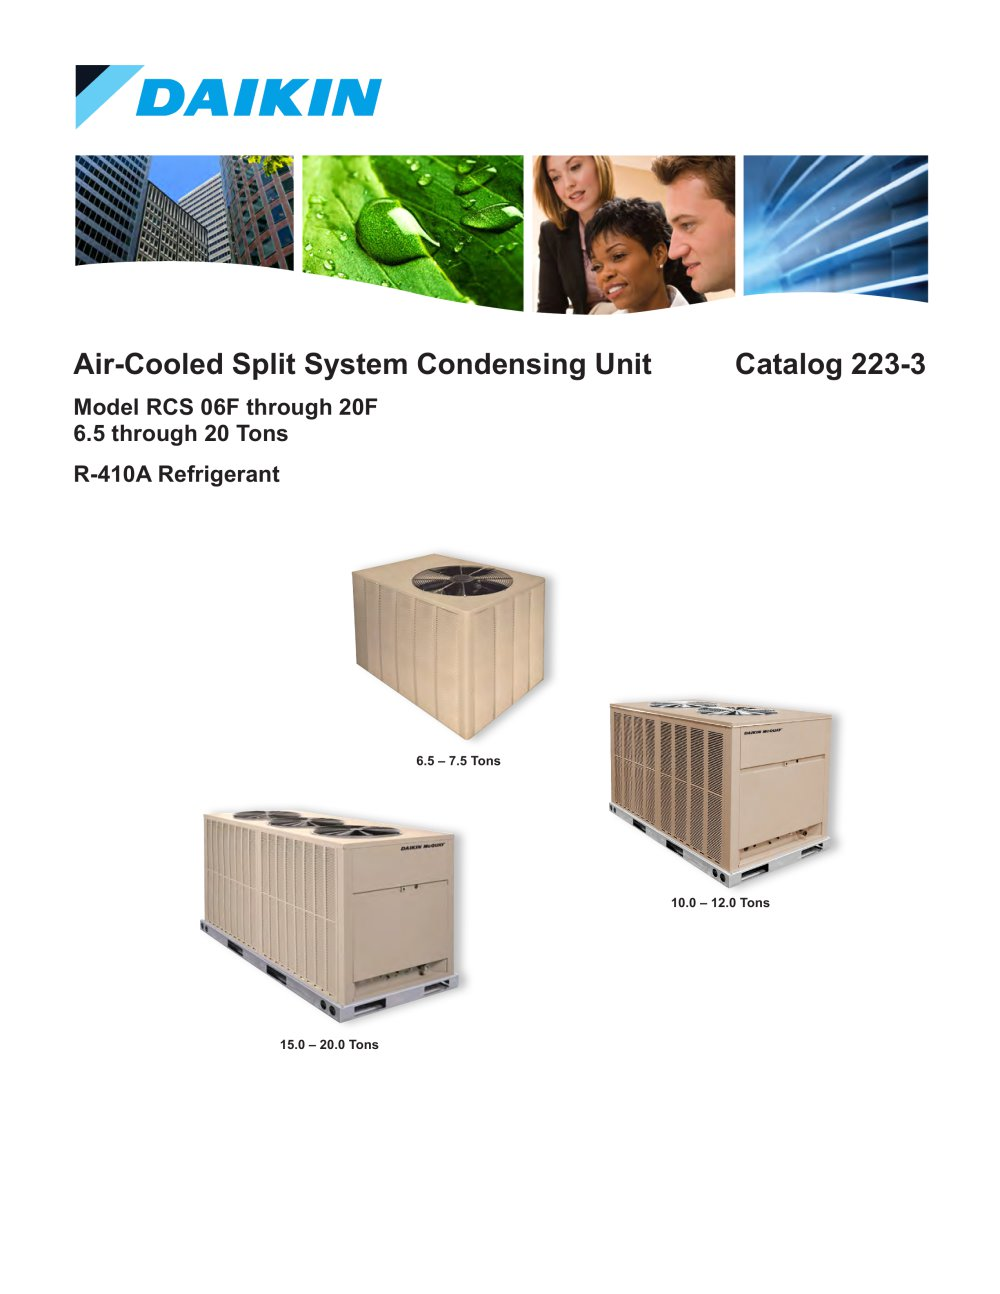 Cat 223 3 Air Cooled Split System Condensing Unit 6 5 To 20 Ton 1 22 Pages